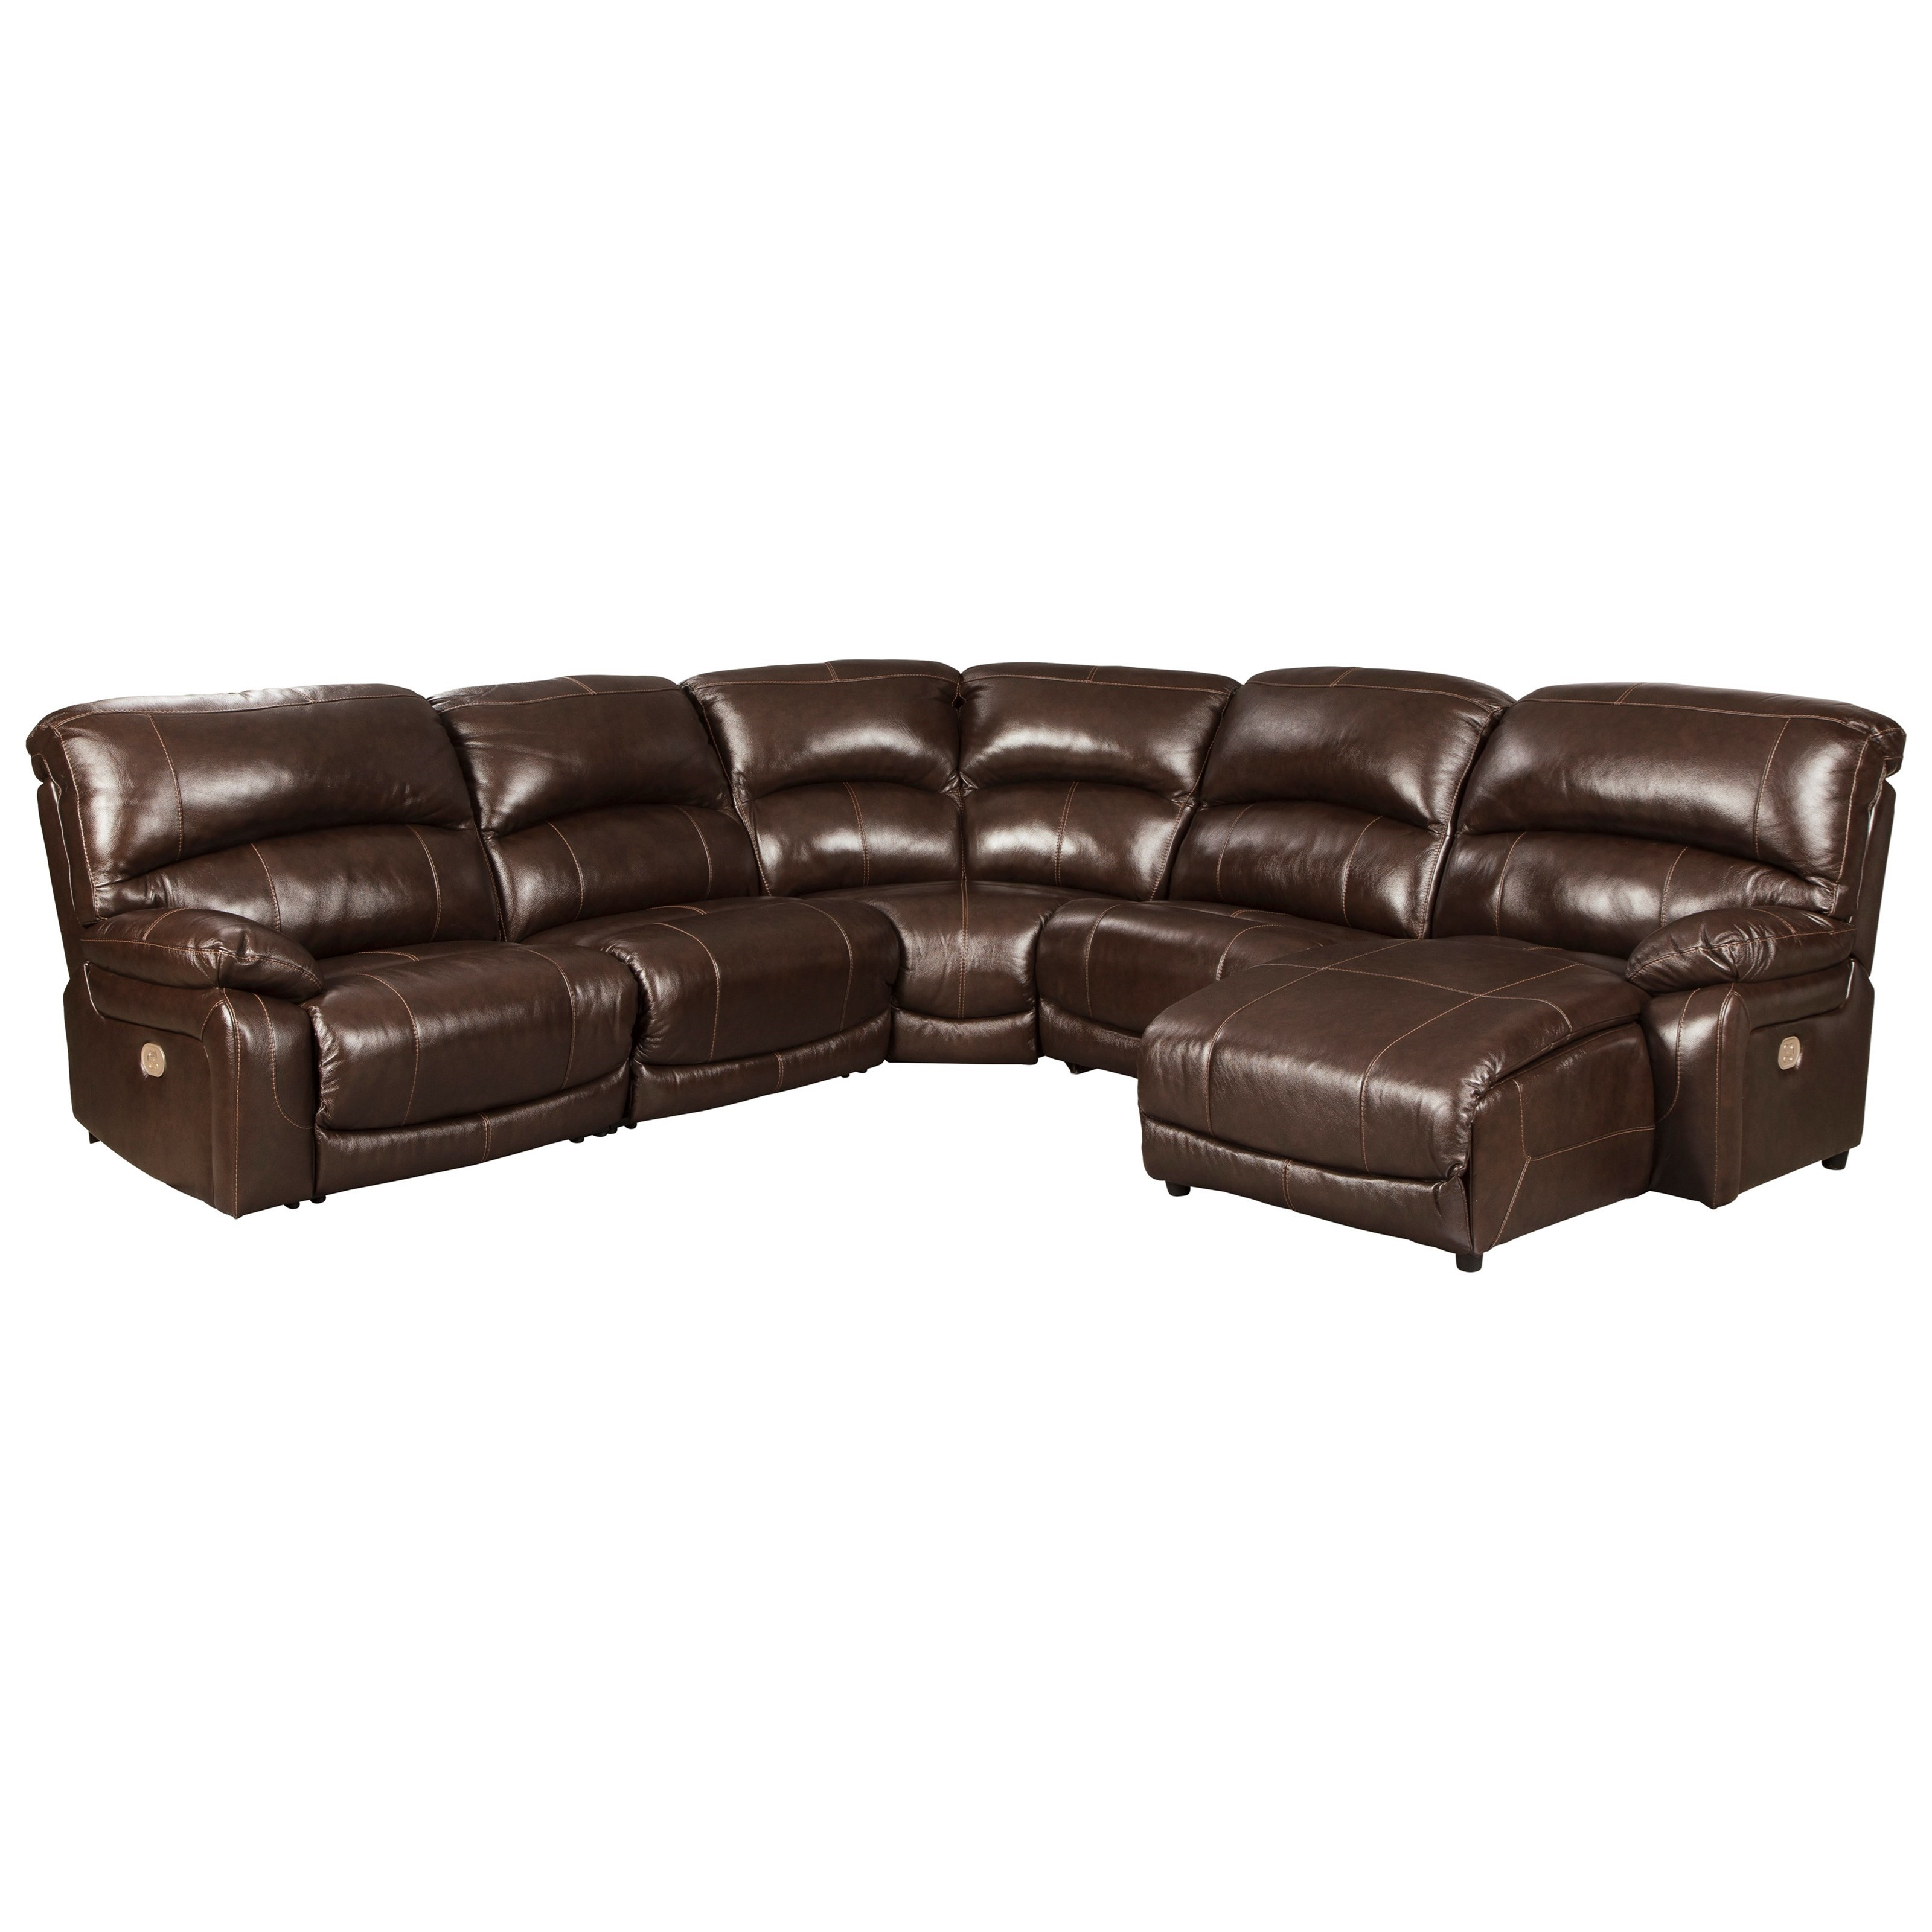 Hallstrung 5-Piece Reclining Sectional with Chaise by Signature Design by Ashley at Value City Furniture